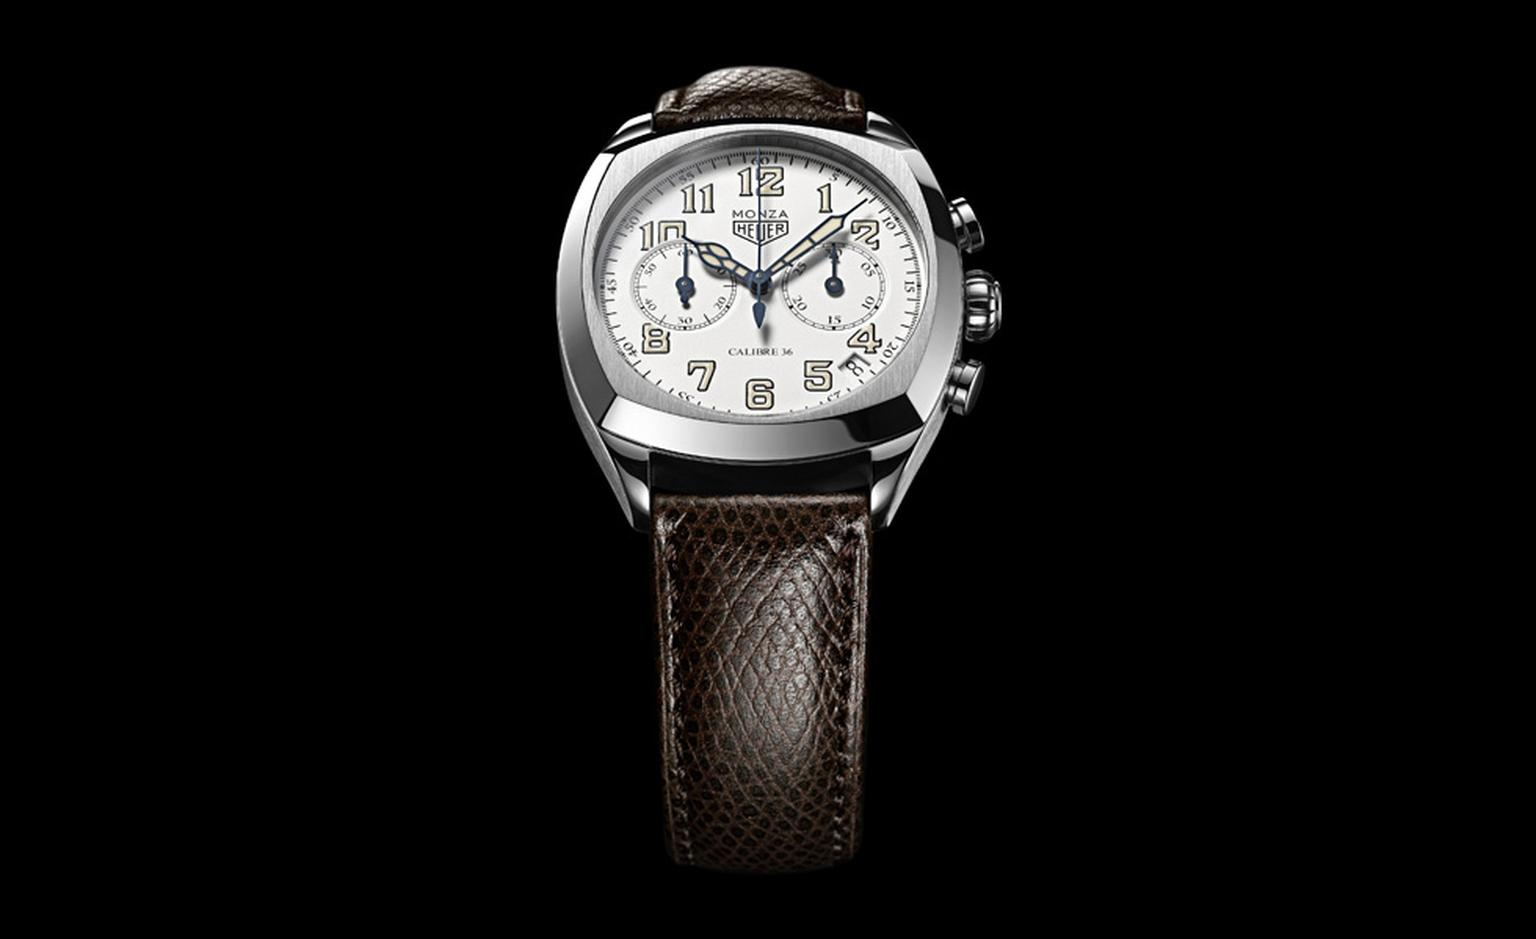 TAG Heuer's new Monza chronograph will be limited to 1911 pieces and is inspired by a model from the 1930's.